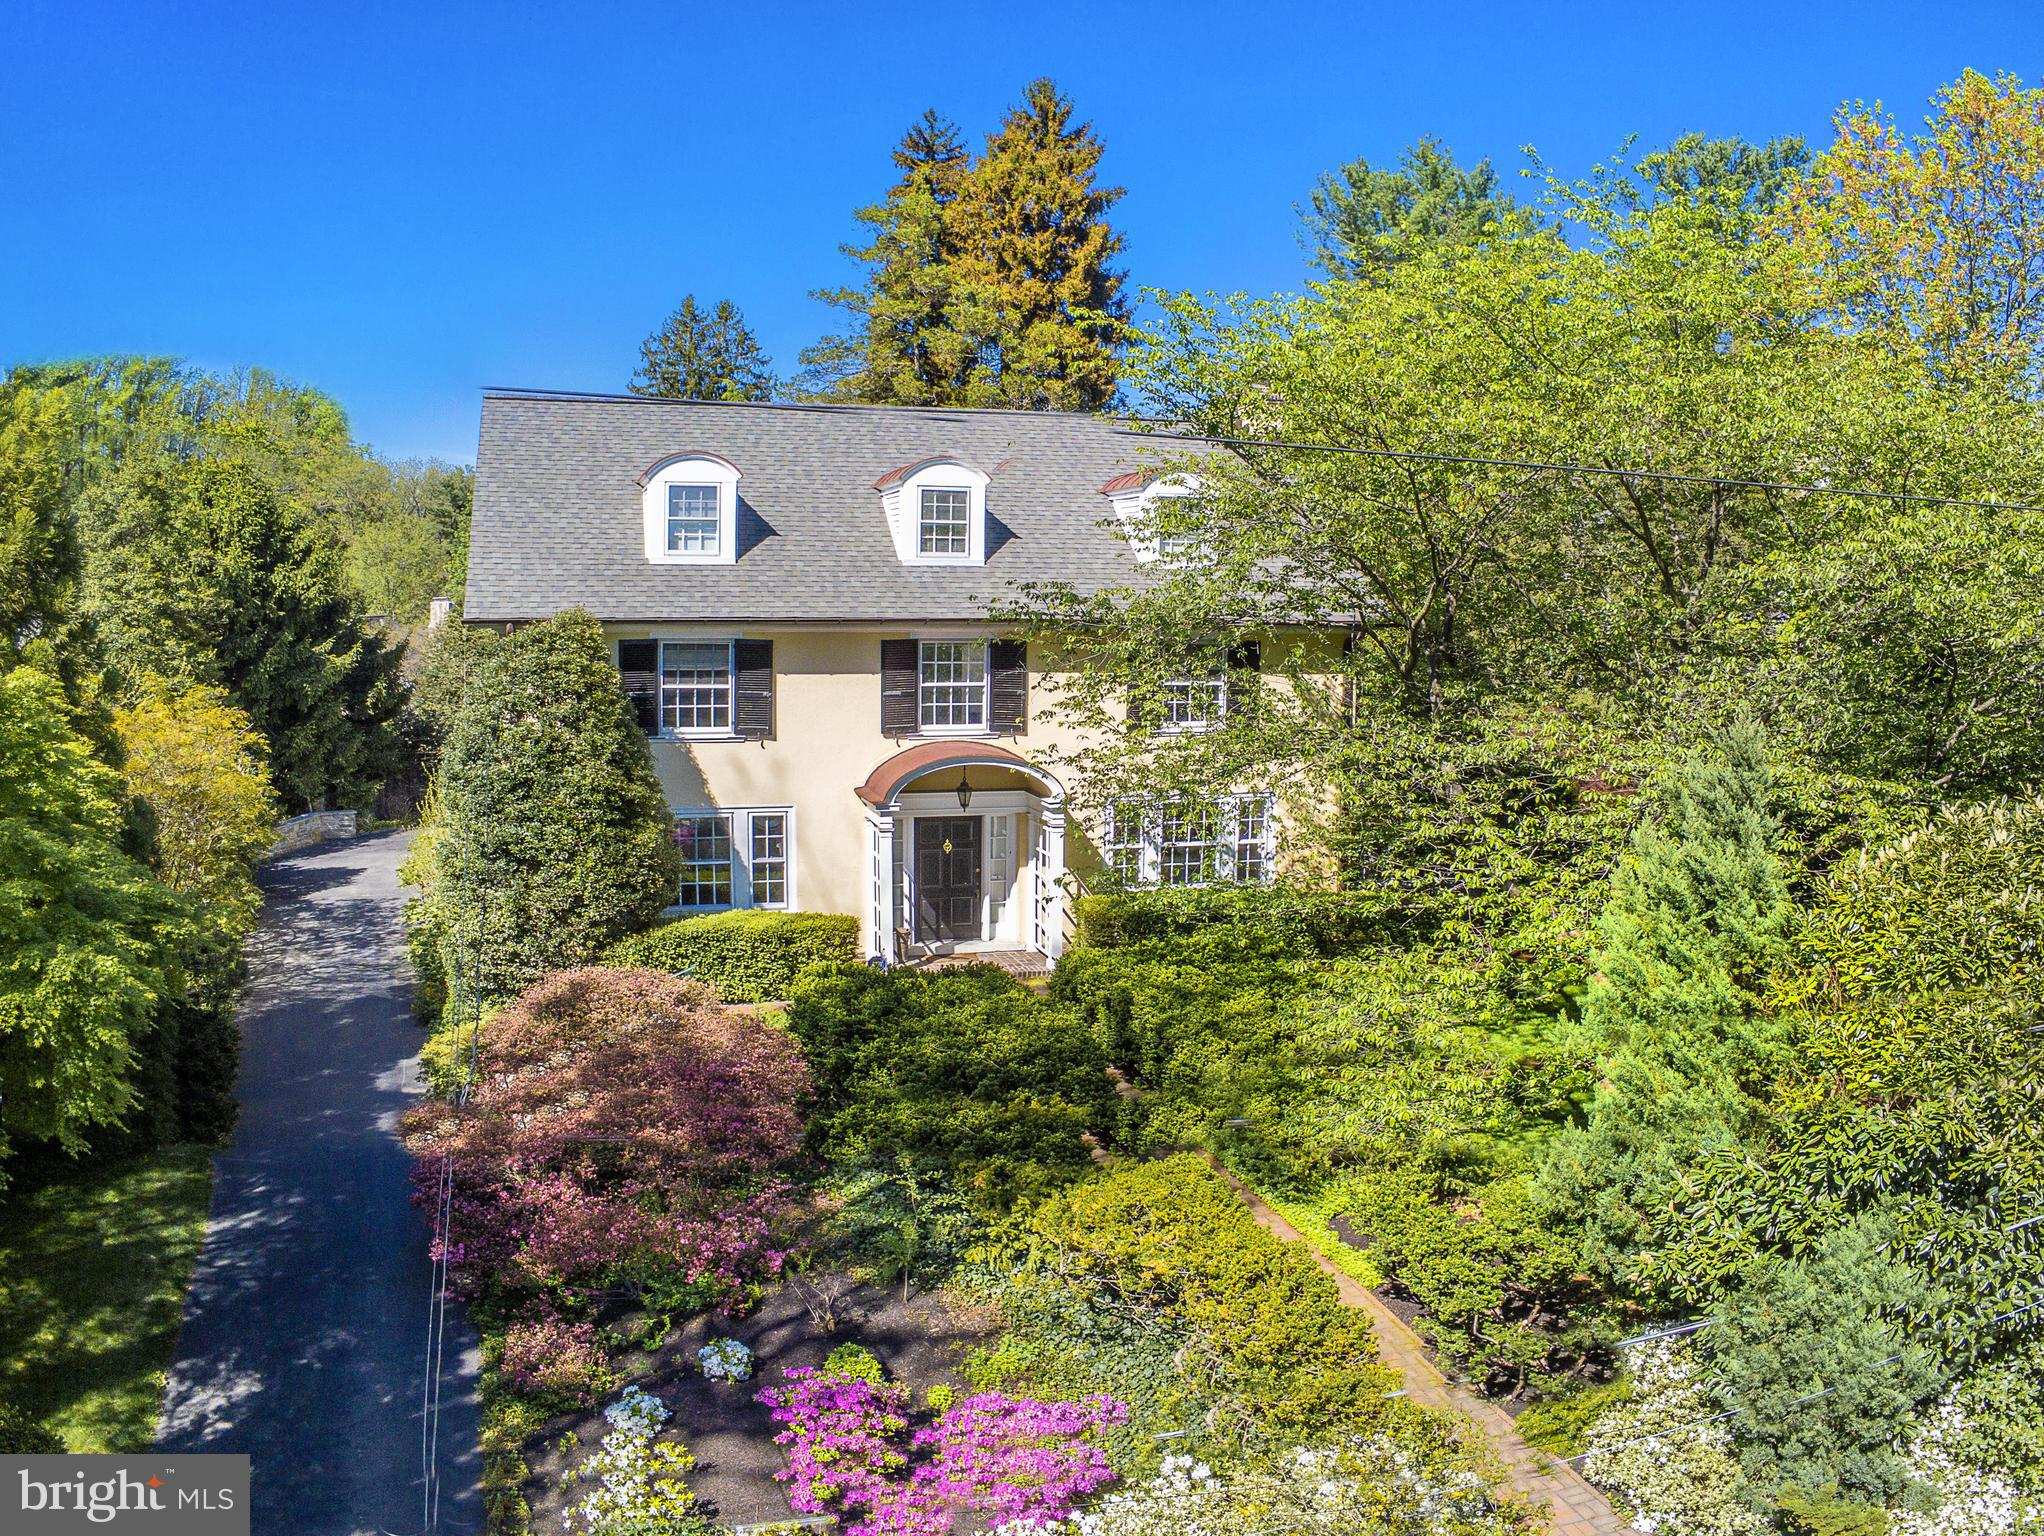 """Built in 1920, this classic 7 BR 4 Bath home in Lower Merion is both charming and inviting.  Nestled on a hill on a quiet street with specimen plantings, peace and tranquility pervade. The front hallway opens to living room featuring an intricately carved fireplace with emerald surround mantle. Abundant sunlight fills the glass window """"sleeping porch"""" with access to rear patio, reminiscent of miniature Longwood Gardens! At the end of the center hall is a powder room. To the left is the gracious sunlit dining room, leading to the kitchen . Pass through the Butler's Pantry with built ins, conveniently located next to kitchen with Dual Fuel Wolf oven and breakfast area. The laundry is adjacent with storage area and leads to 2 car garage with """"trap door"""" conversion for easy access. There is another garage and beyond a garden wall that separates garage from the lovely gardens. There is a small potting shed where the lilacs bloom and infuse the air with heavenly perfume! Inside ascend the stairs , on the left is  a guest room with double closet. The main bedroom is spacious with large windows admitting sunshine. The bath is updated and adjacent to a large closet. The third bedroom is adjacent to a full bath and linen closet. The 4th bedroom and closet is charming with a full bath and  separate storage closet with built ins. Additionally on the 3rd floor there is a full bath with claw foot tub, 5th/6th bedroom with closets. The 7th bedroom is perfect for au pair or guests, complete with cedar closet and attic access. The lower level has ample storage with two separate closets, and outside access. This home offers timeless beauty and is located in the top rated Lower Merion School District. It is literally within 8  minute walking distance to the Bryn Mawr train, Baldwin School, Bryn Mawr College and Shipley Schools. This home is a treasure and will be cherished by the new fortunate owners!"""